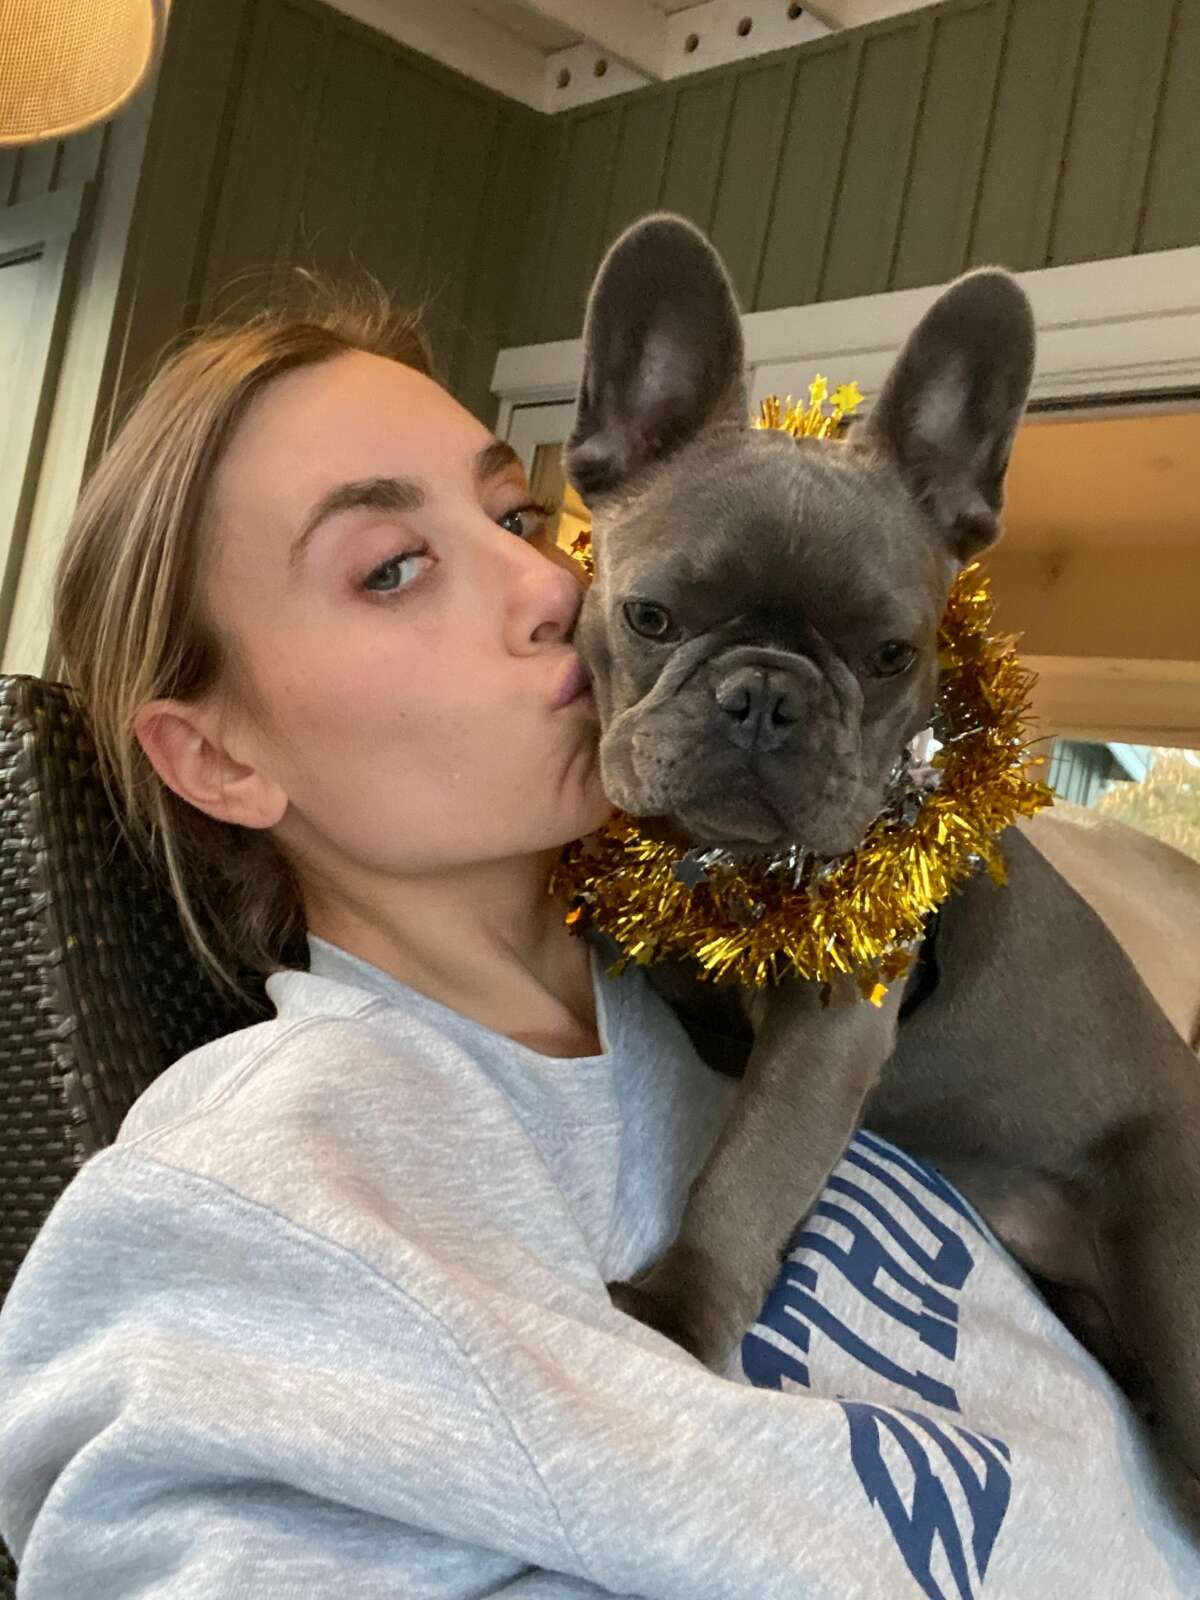 San Francisco resident Sarah Vorhaus with her French bulldog Chloe. She was walking her two dogs in Russian Hill on Jan. 5, 2021, when she was assaulted at gunpoint, she says. The suspects stole her 5-month-old dog, police say.